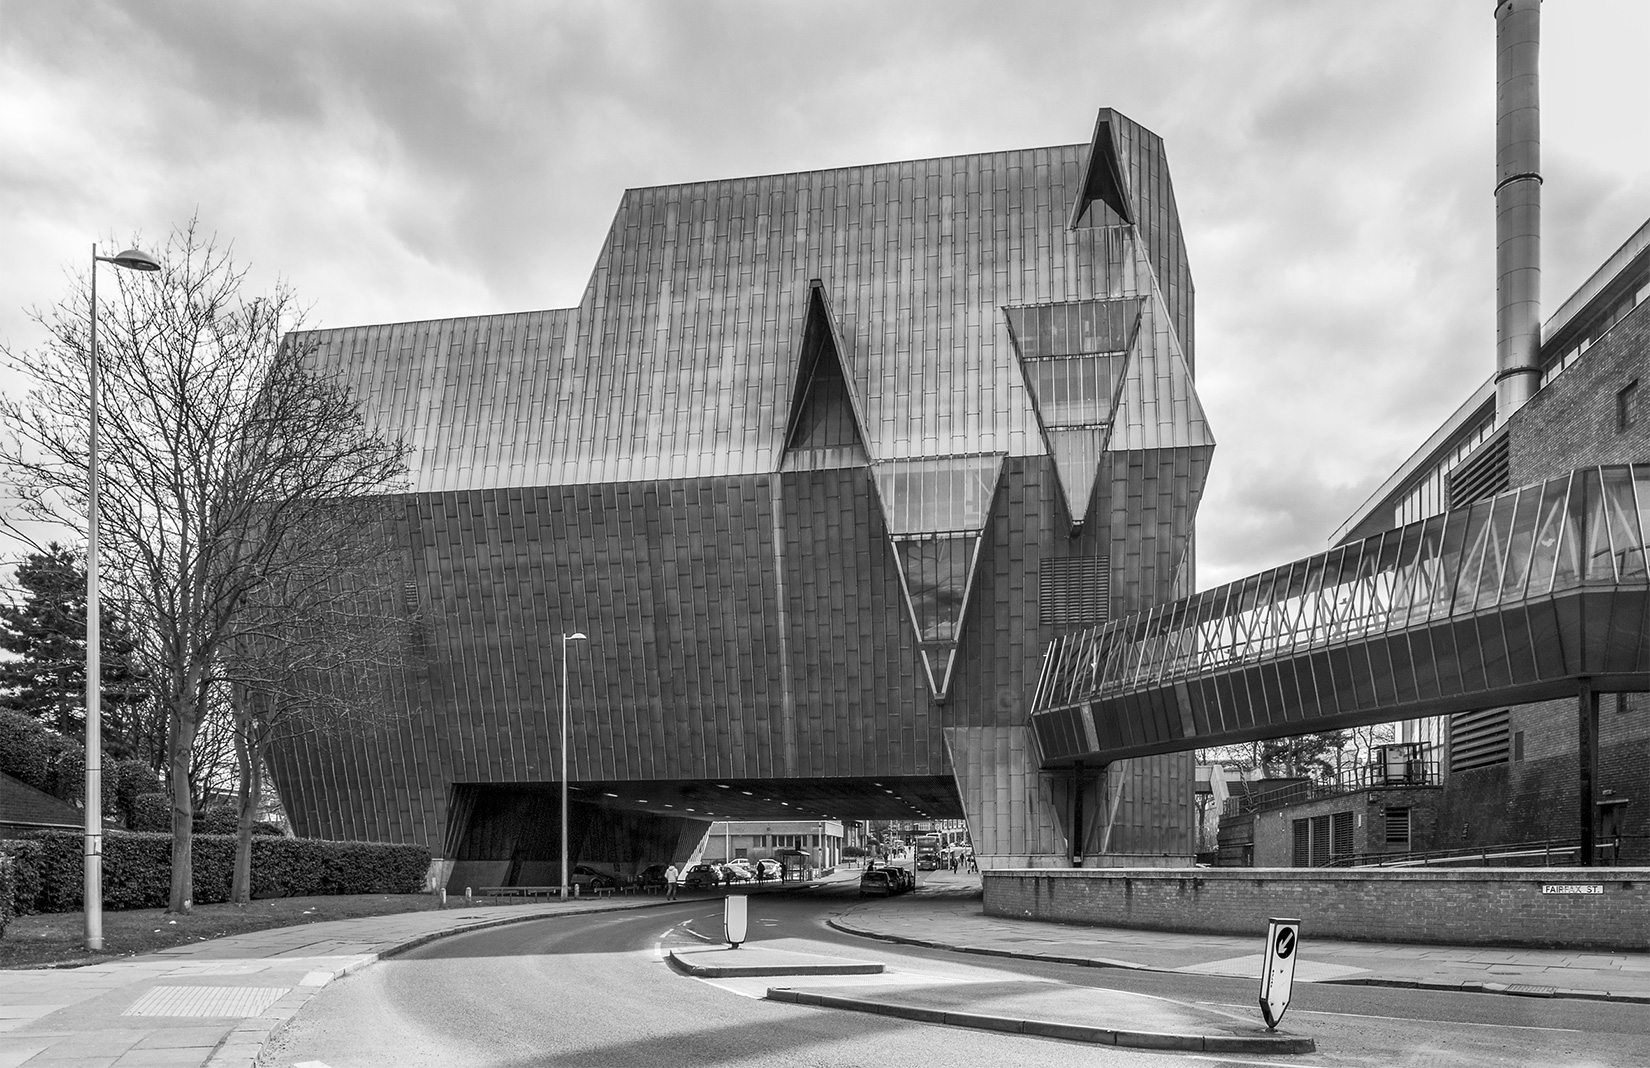 Harry Noble, 'The Elephant', Coventry Sports Centre, Fairfax Street, Coventry, 1973-77